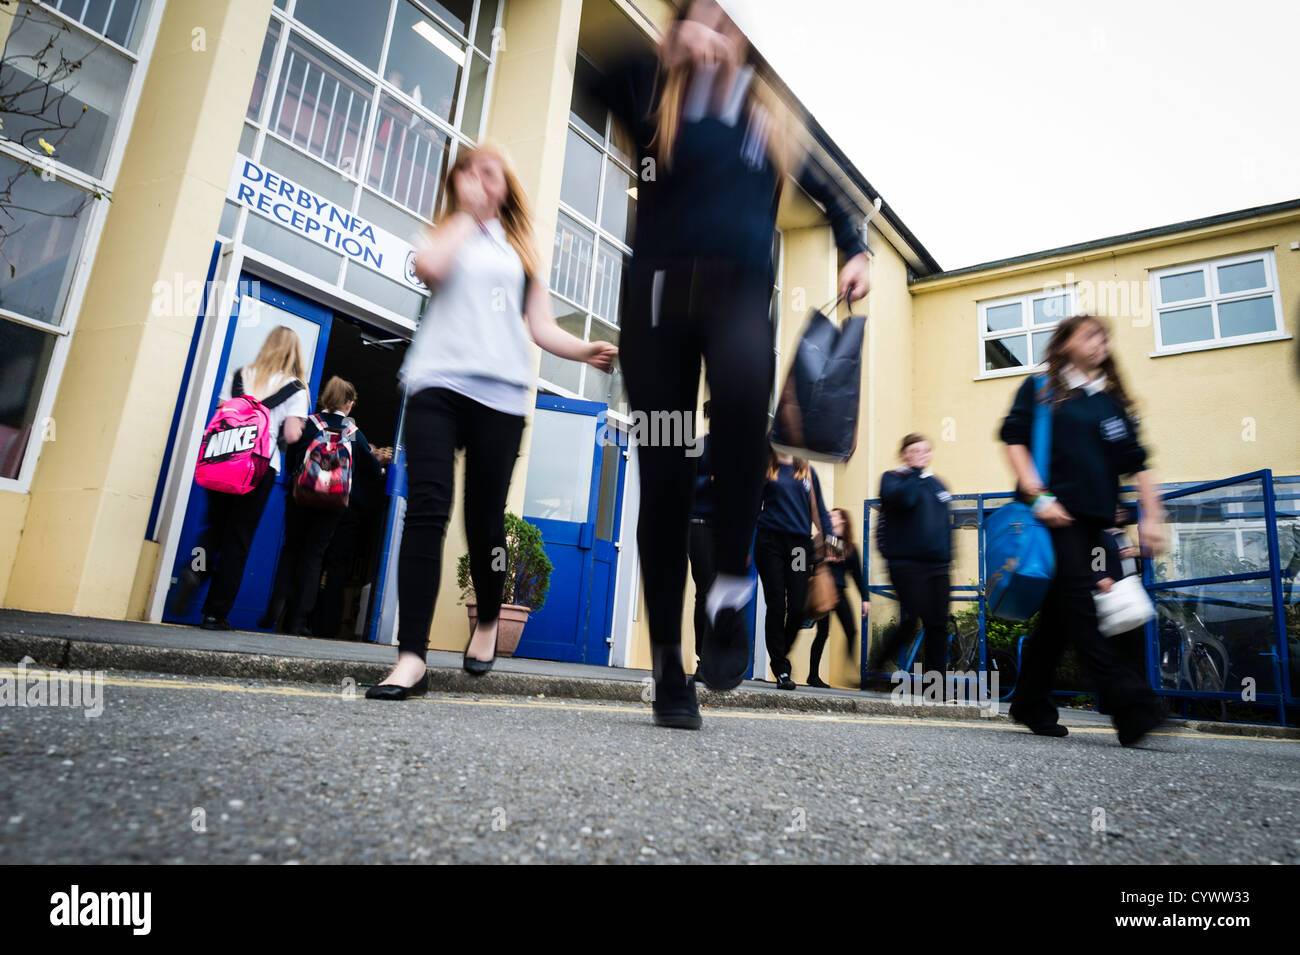 At the end of the day teenage pupils rushing out leaving a secondary school, Wales UK - Stock Image